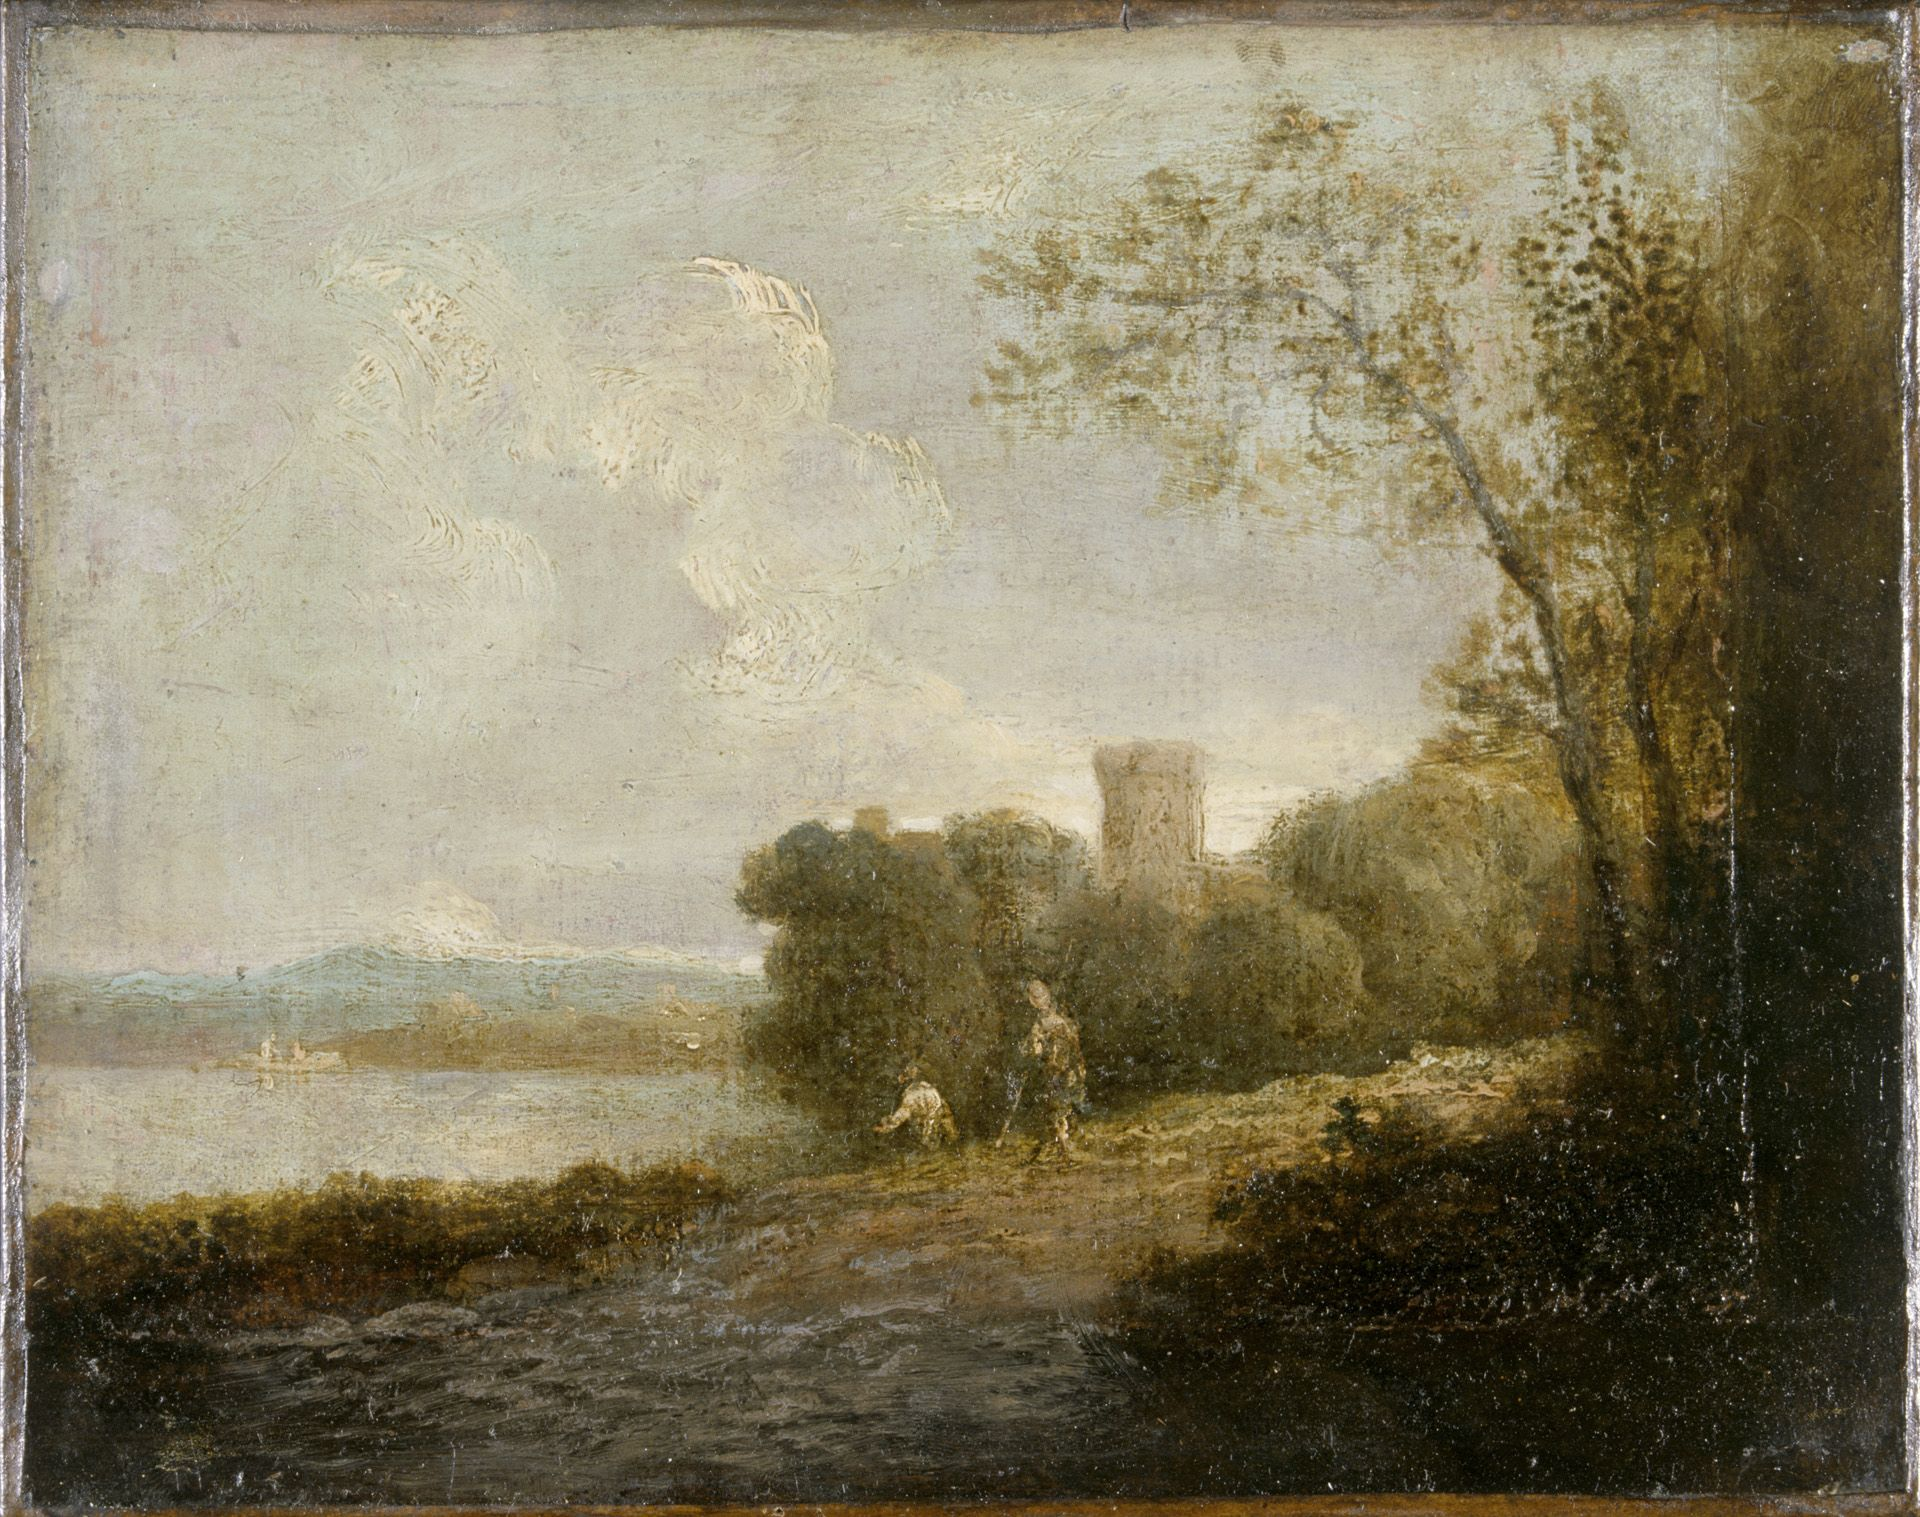 Landscape with a Castle by a Lake